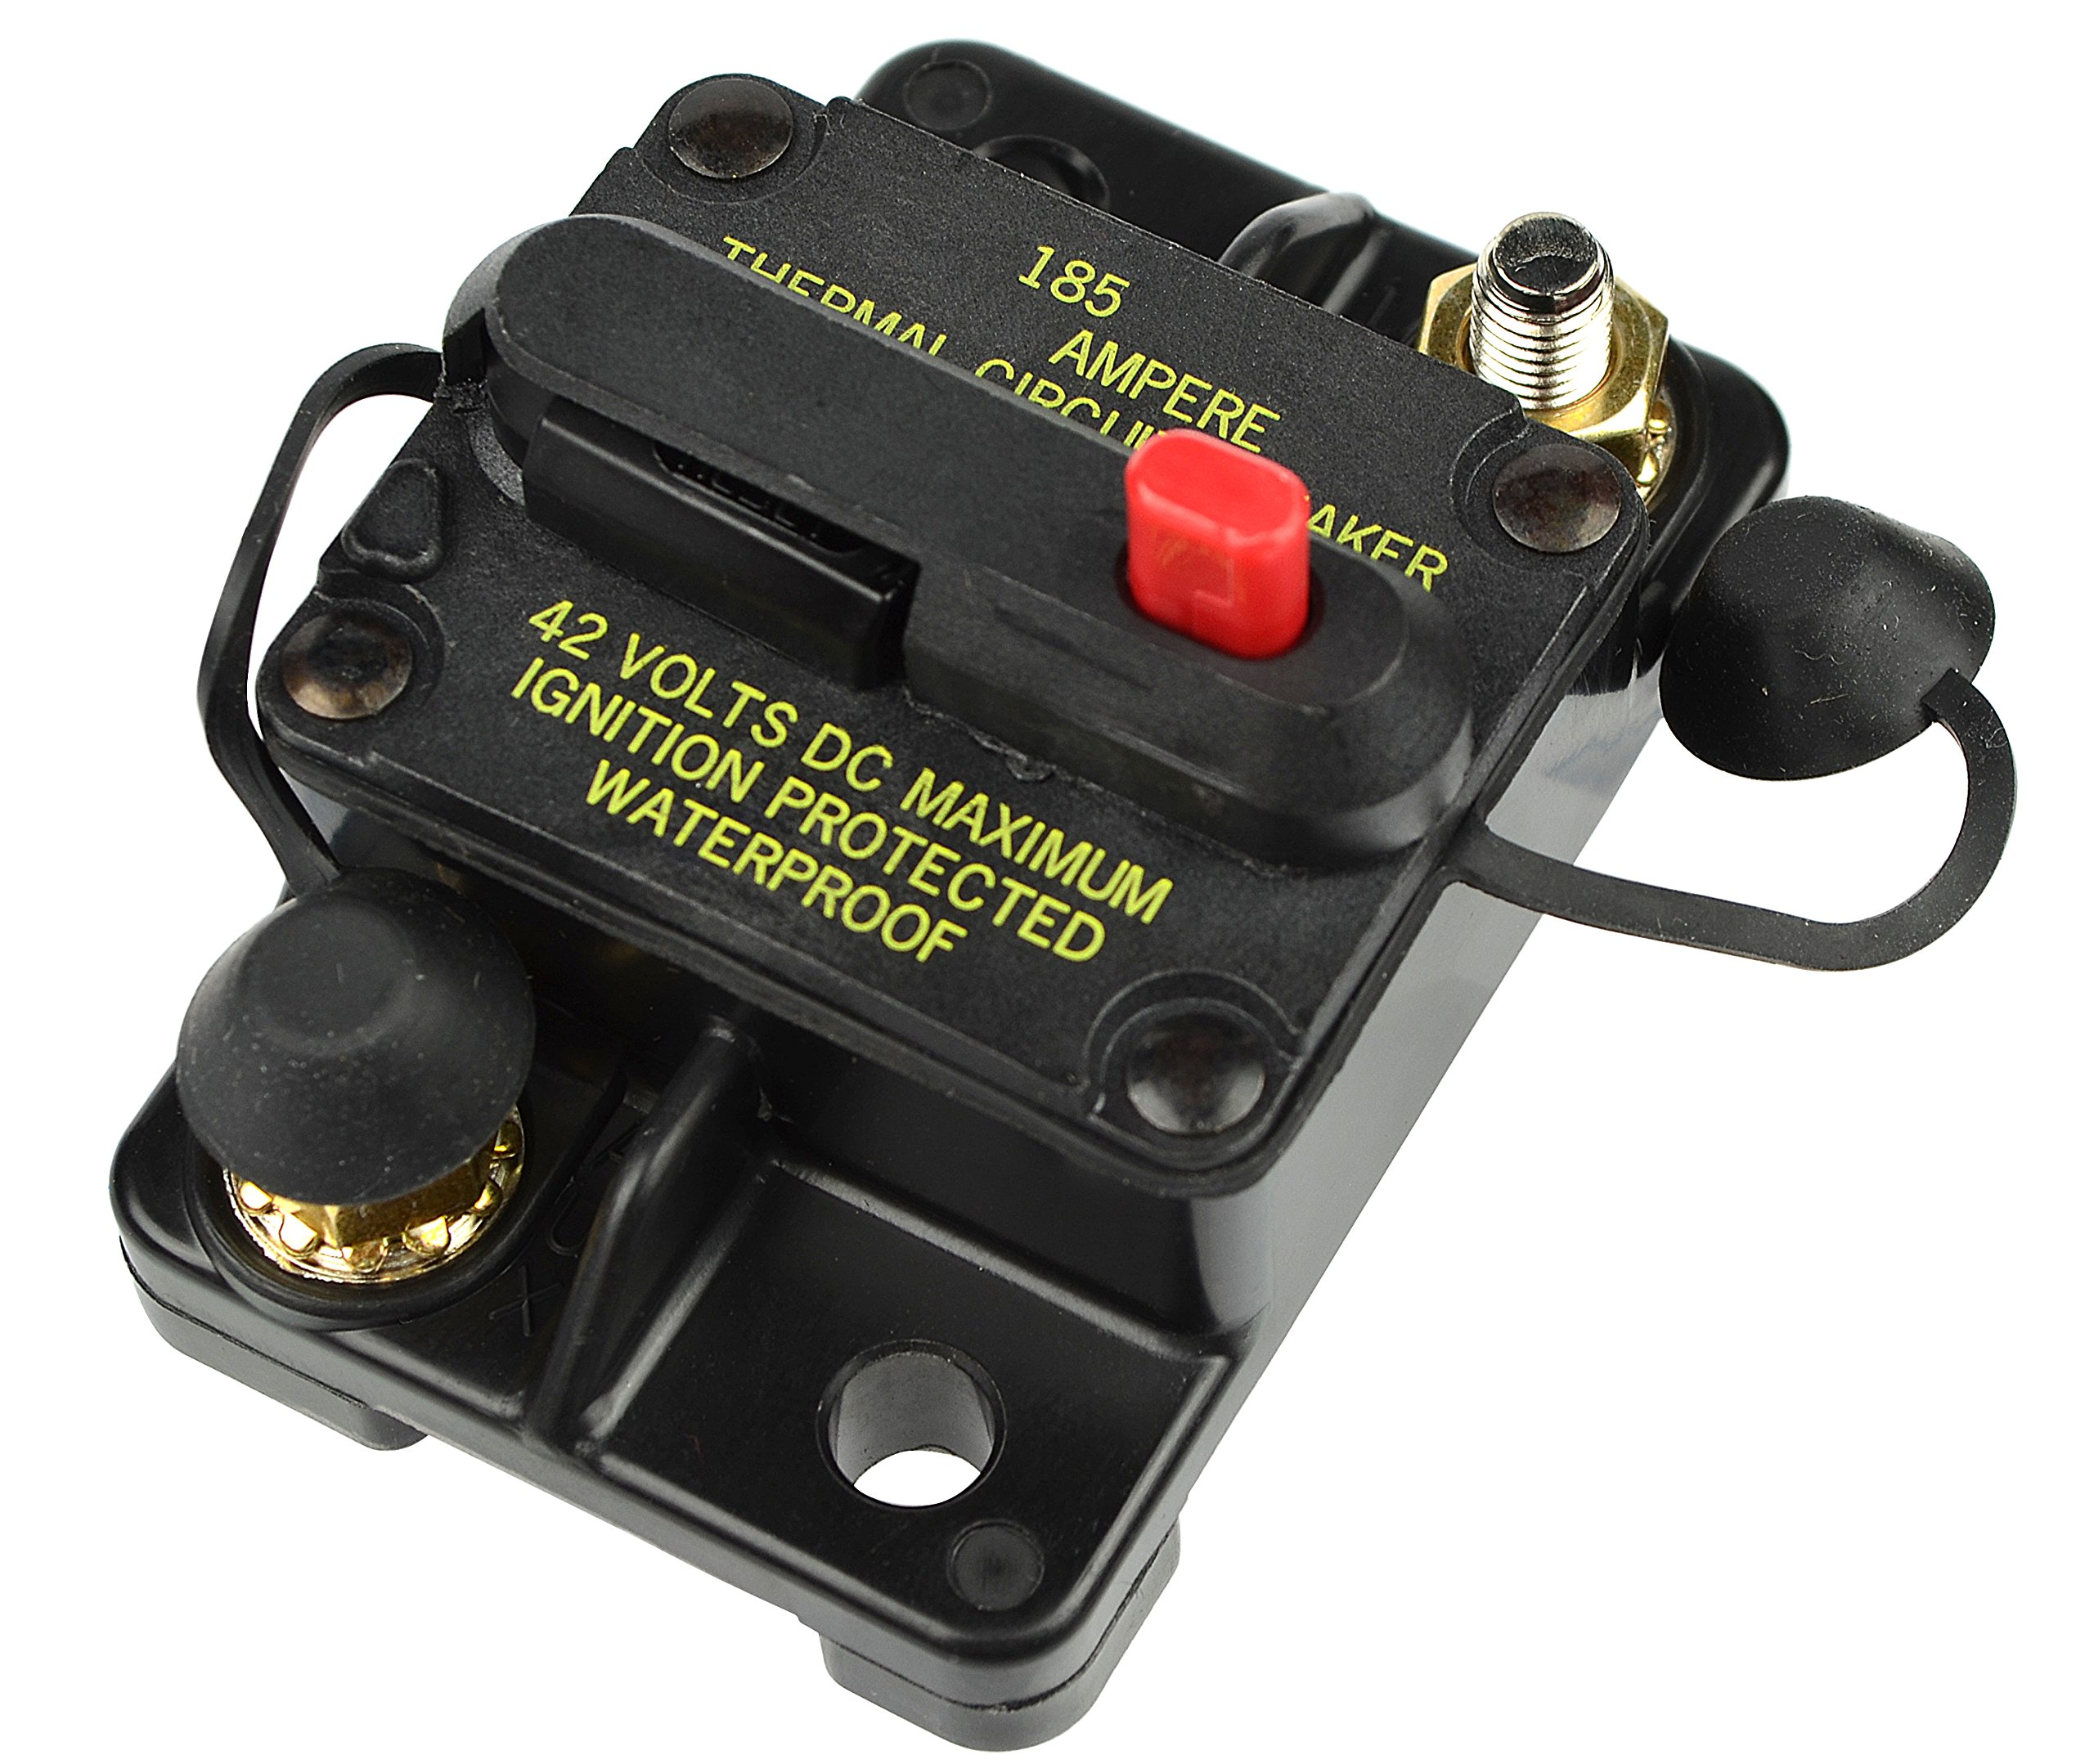 Bussmann Cb185 50 Series Automotive Circuit Burnt Breaker Fuse Box Plug In Mounting Amps Blade Terminal Connection